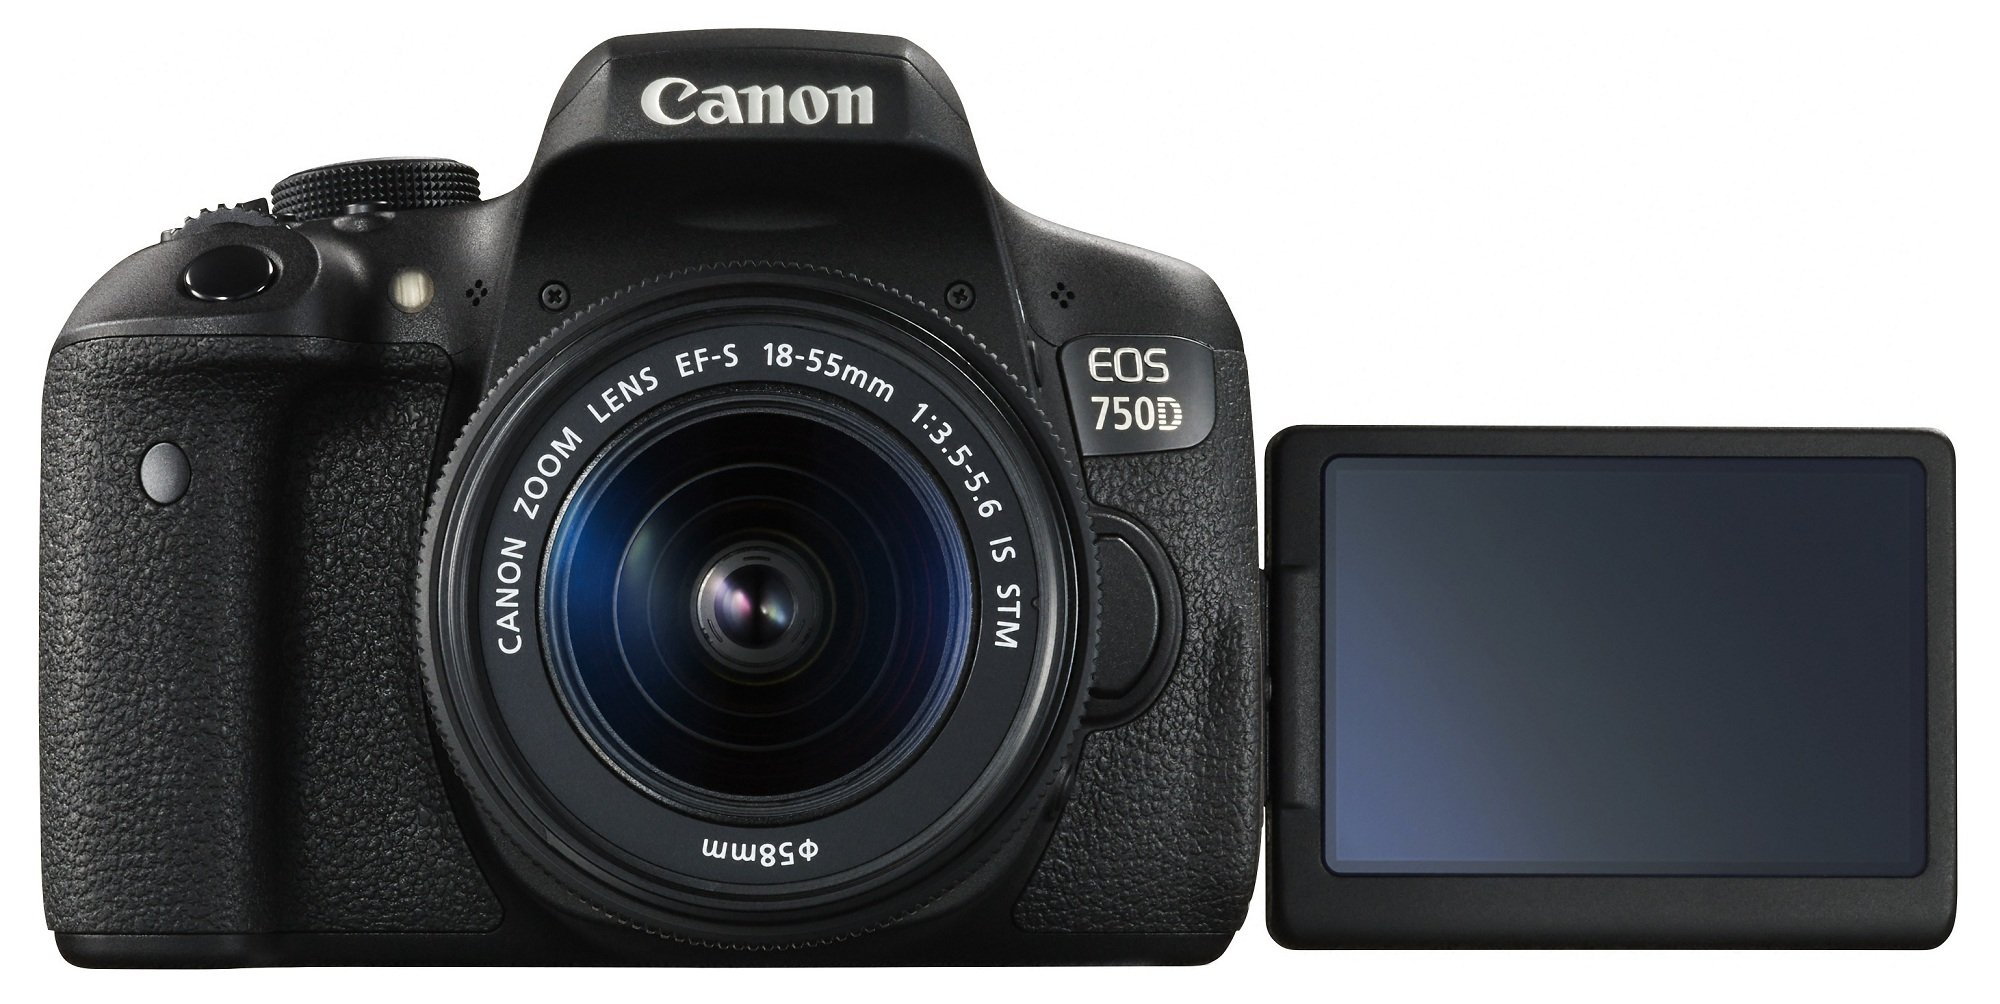 Camera Dslr Camera Specs canon eos 750d review remains a great mid price choice expert lcd